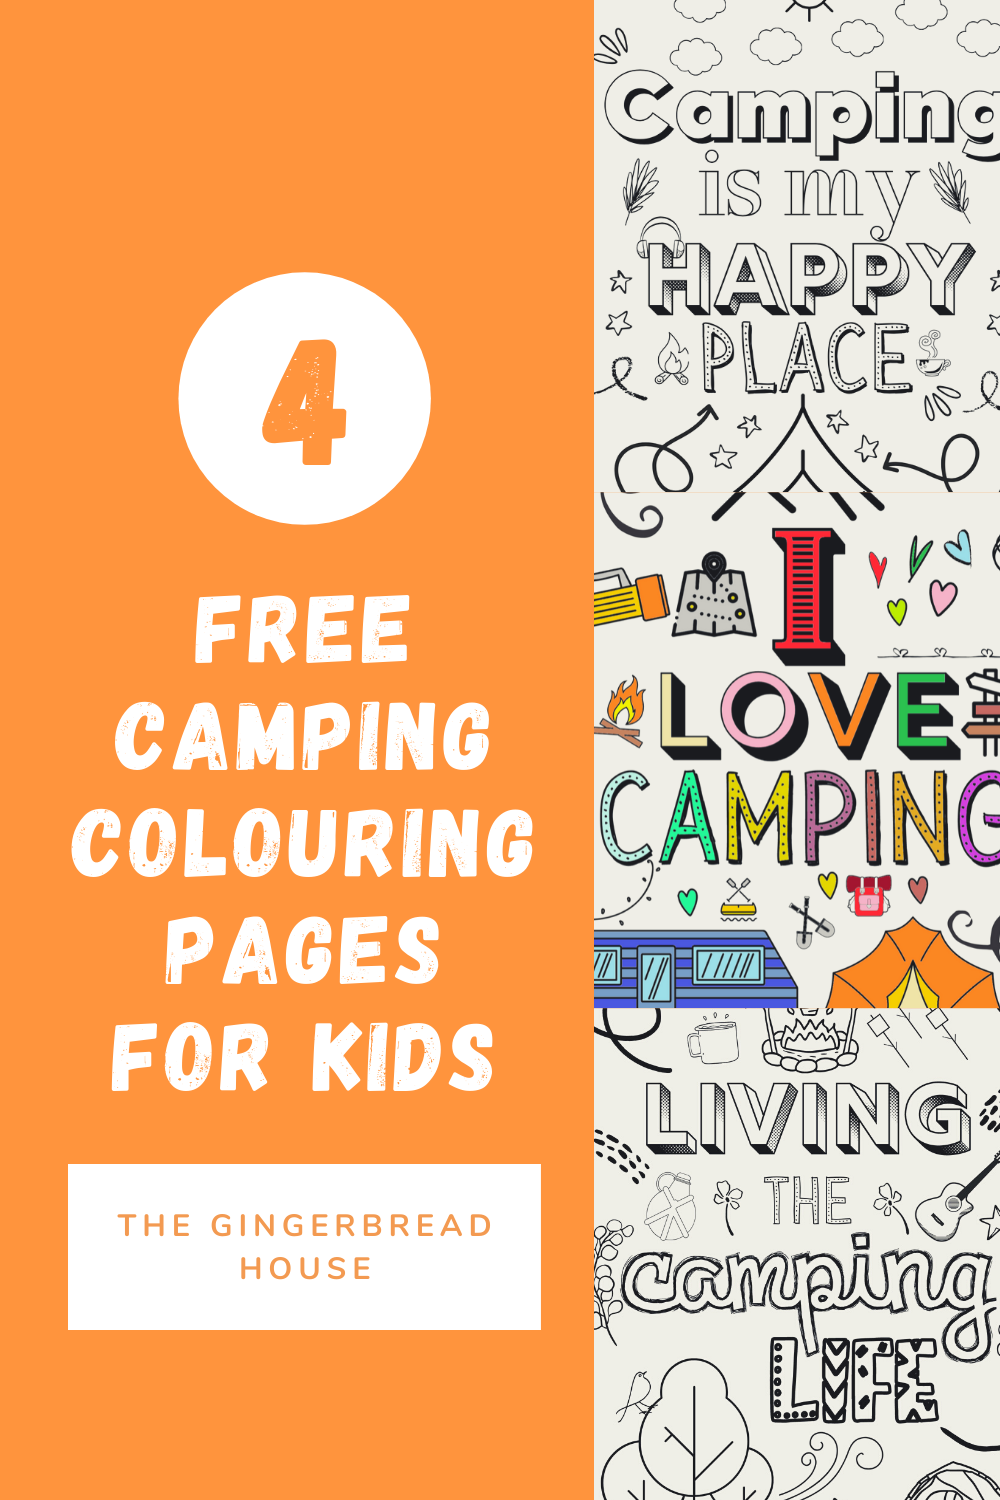 Free camping colouring pages for kids